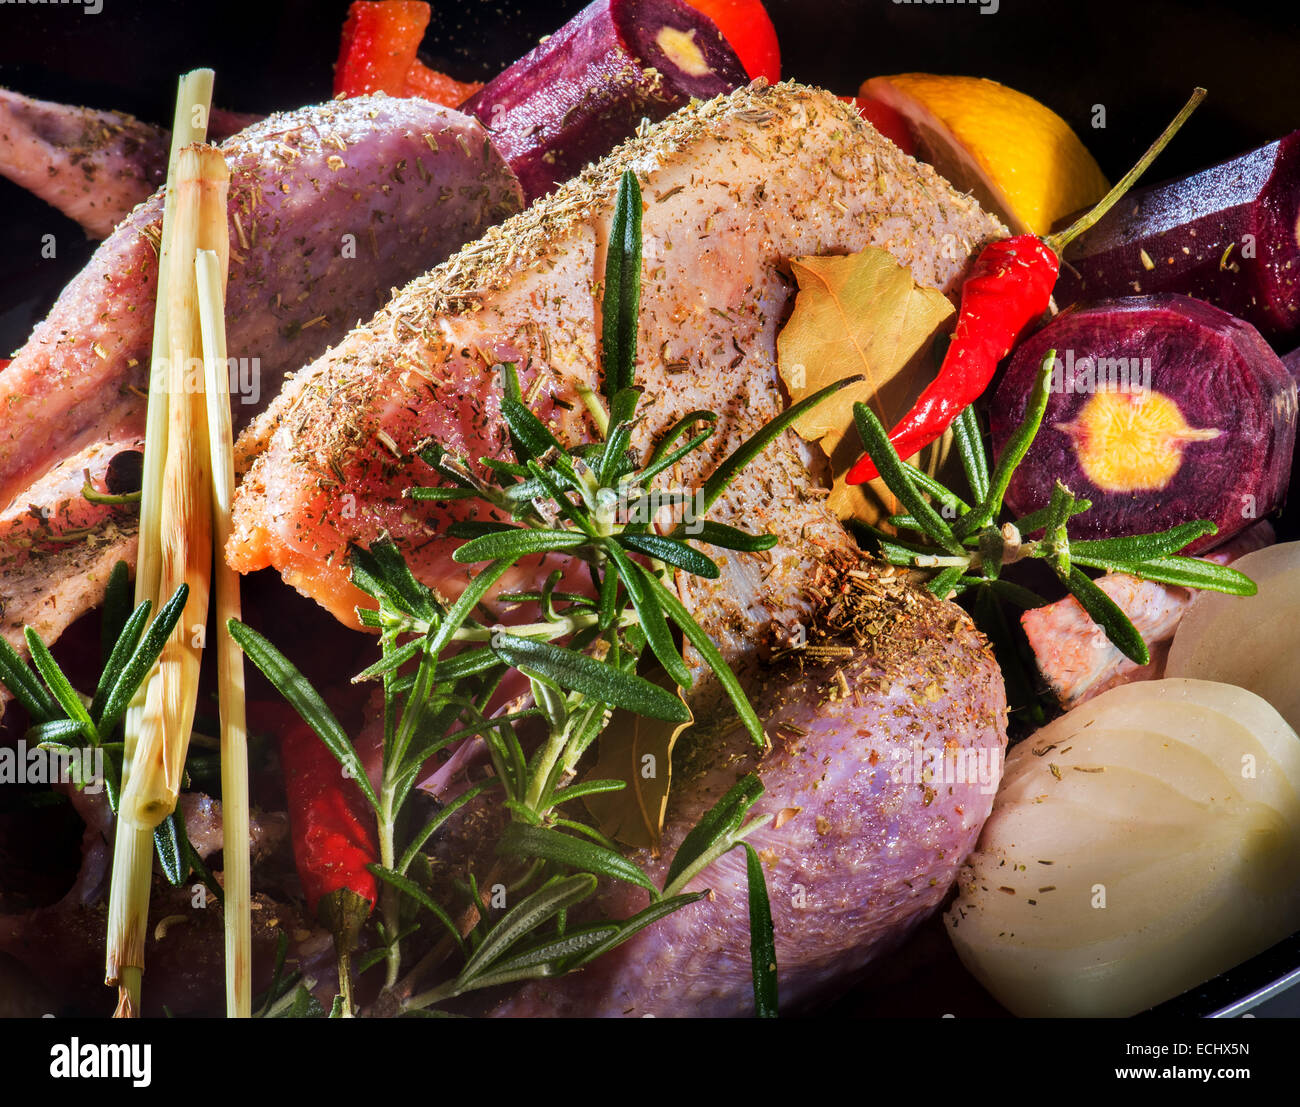 Guinea fowl preparing vegetables for roasting pan. health healthy food herbs spices red peppers carrots celery basil - Stock Image